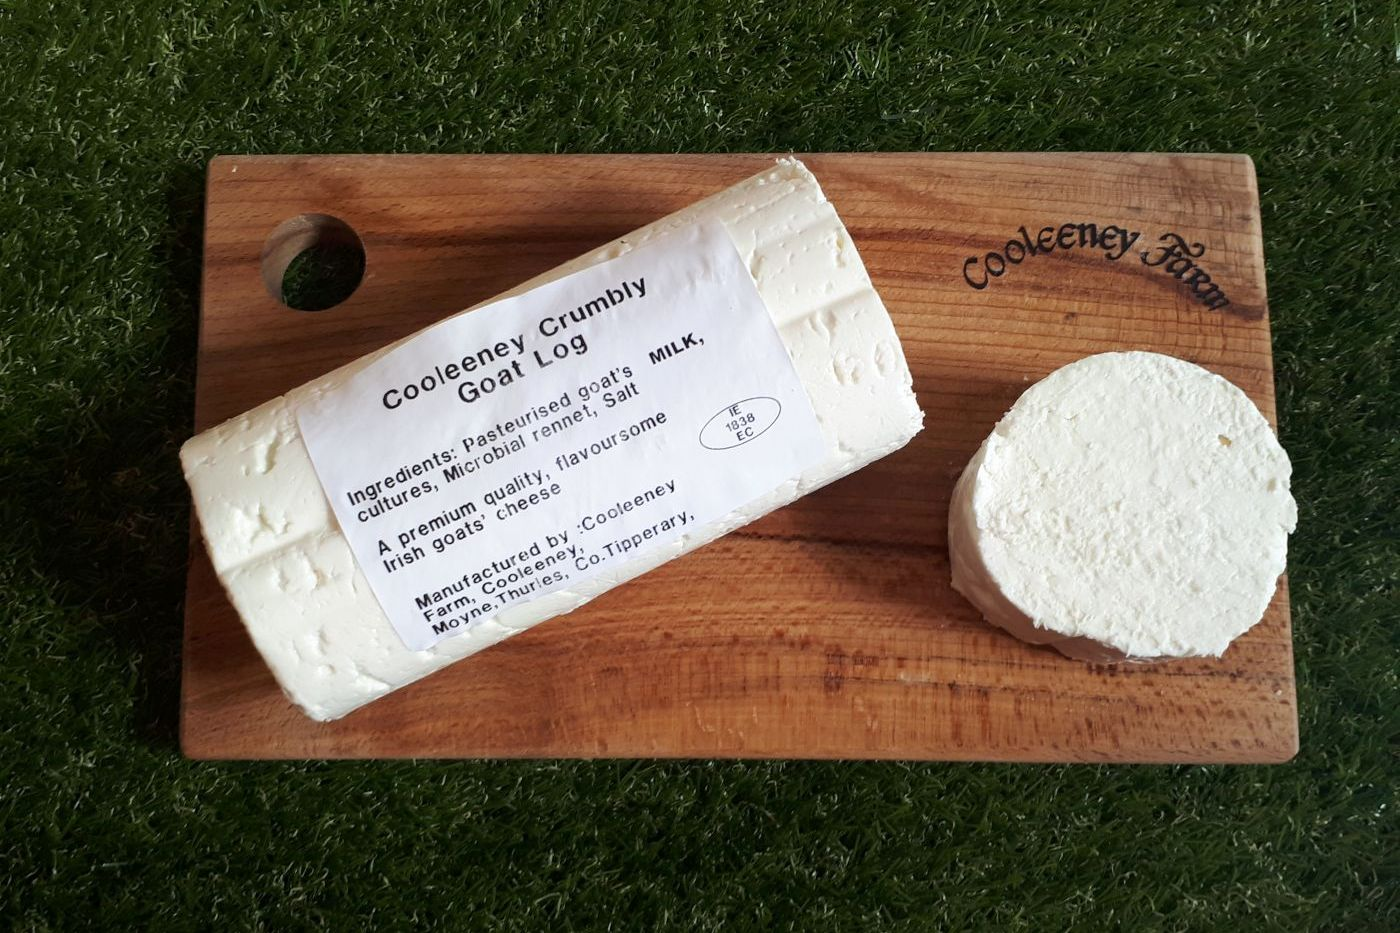 Cooleeney Crumbly goat cheese